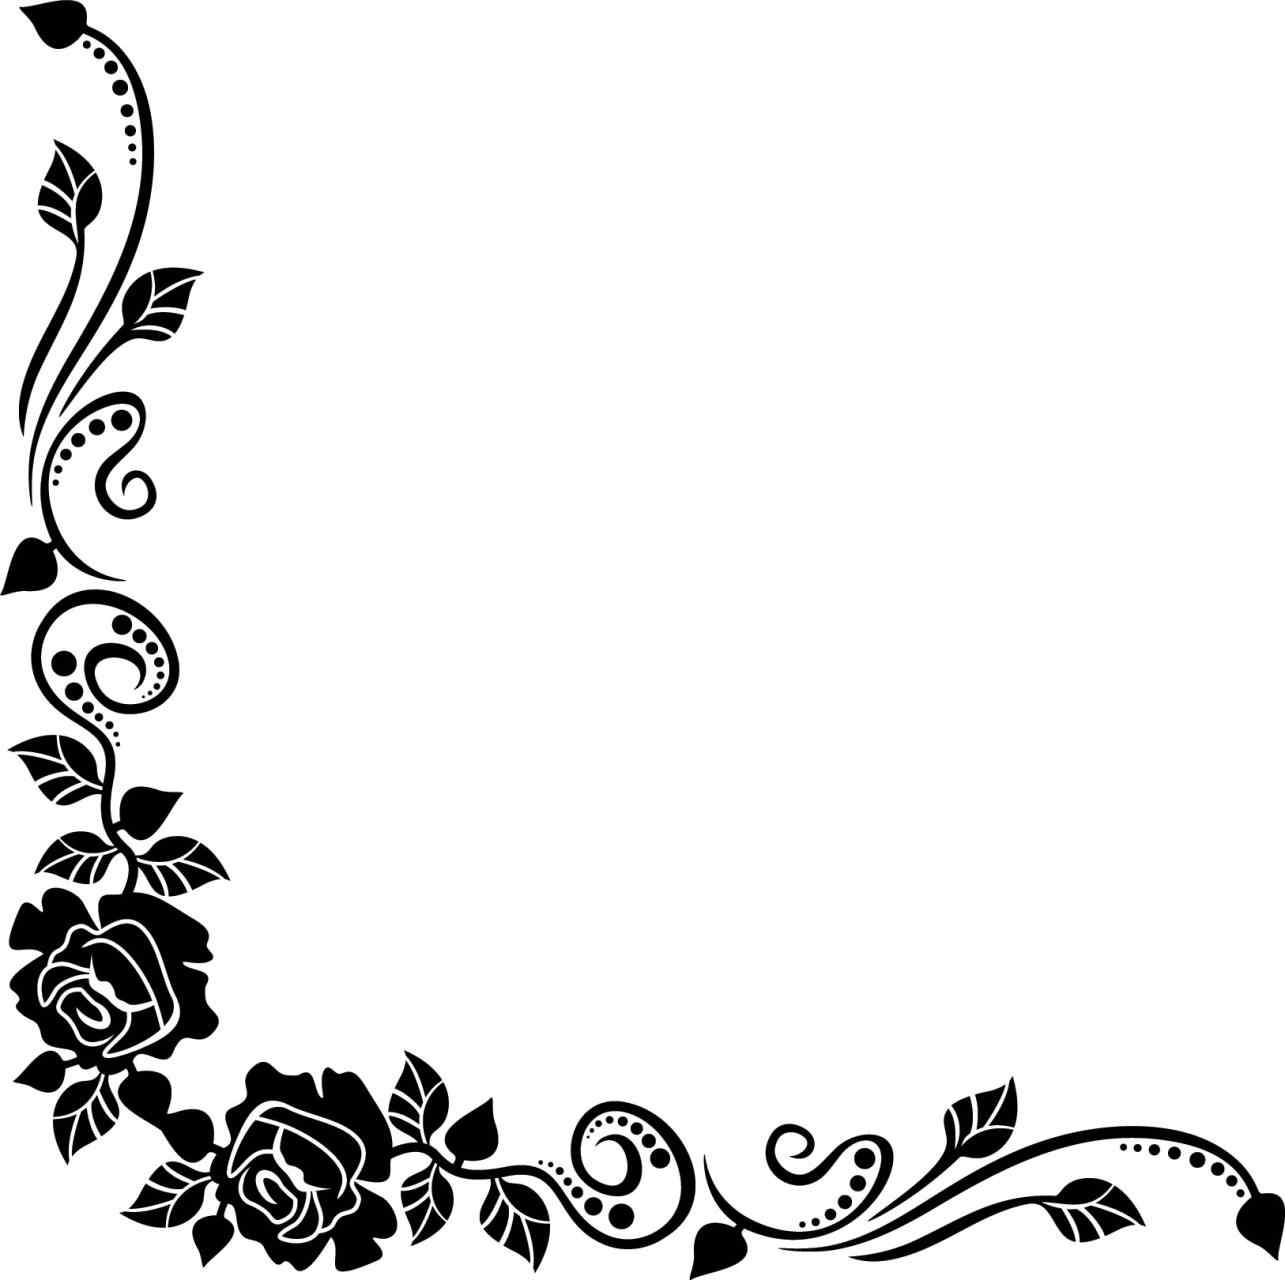 1285x1280 Free Flower Rose Corner Border Black And White Bouquet Clipart